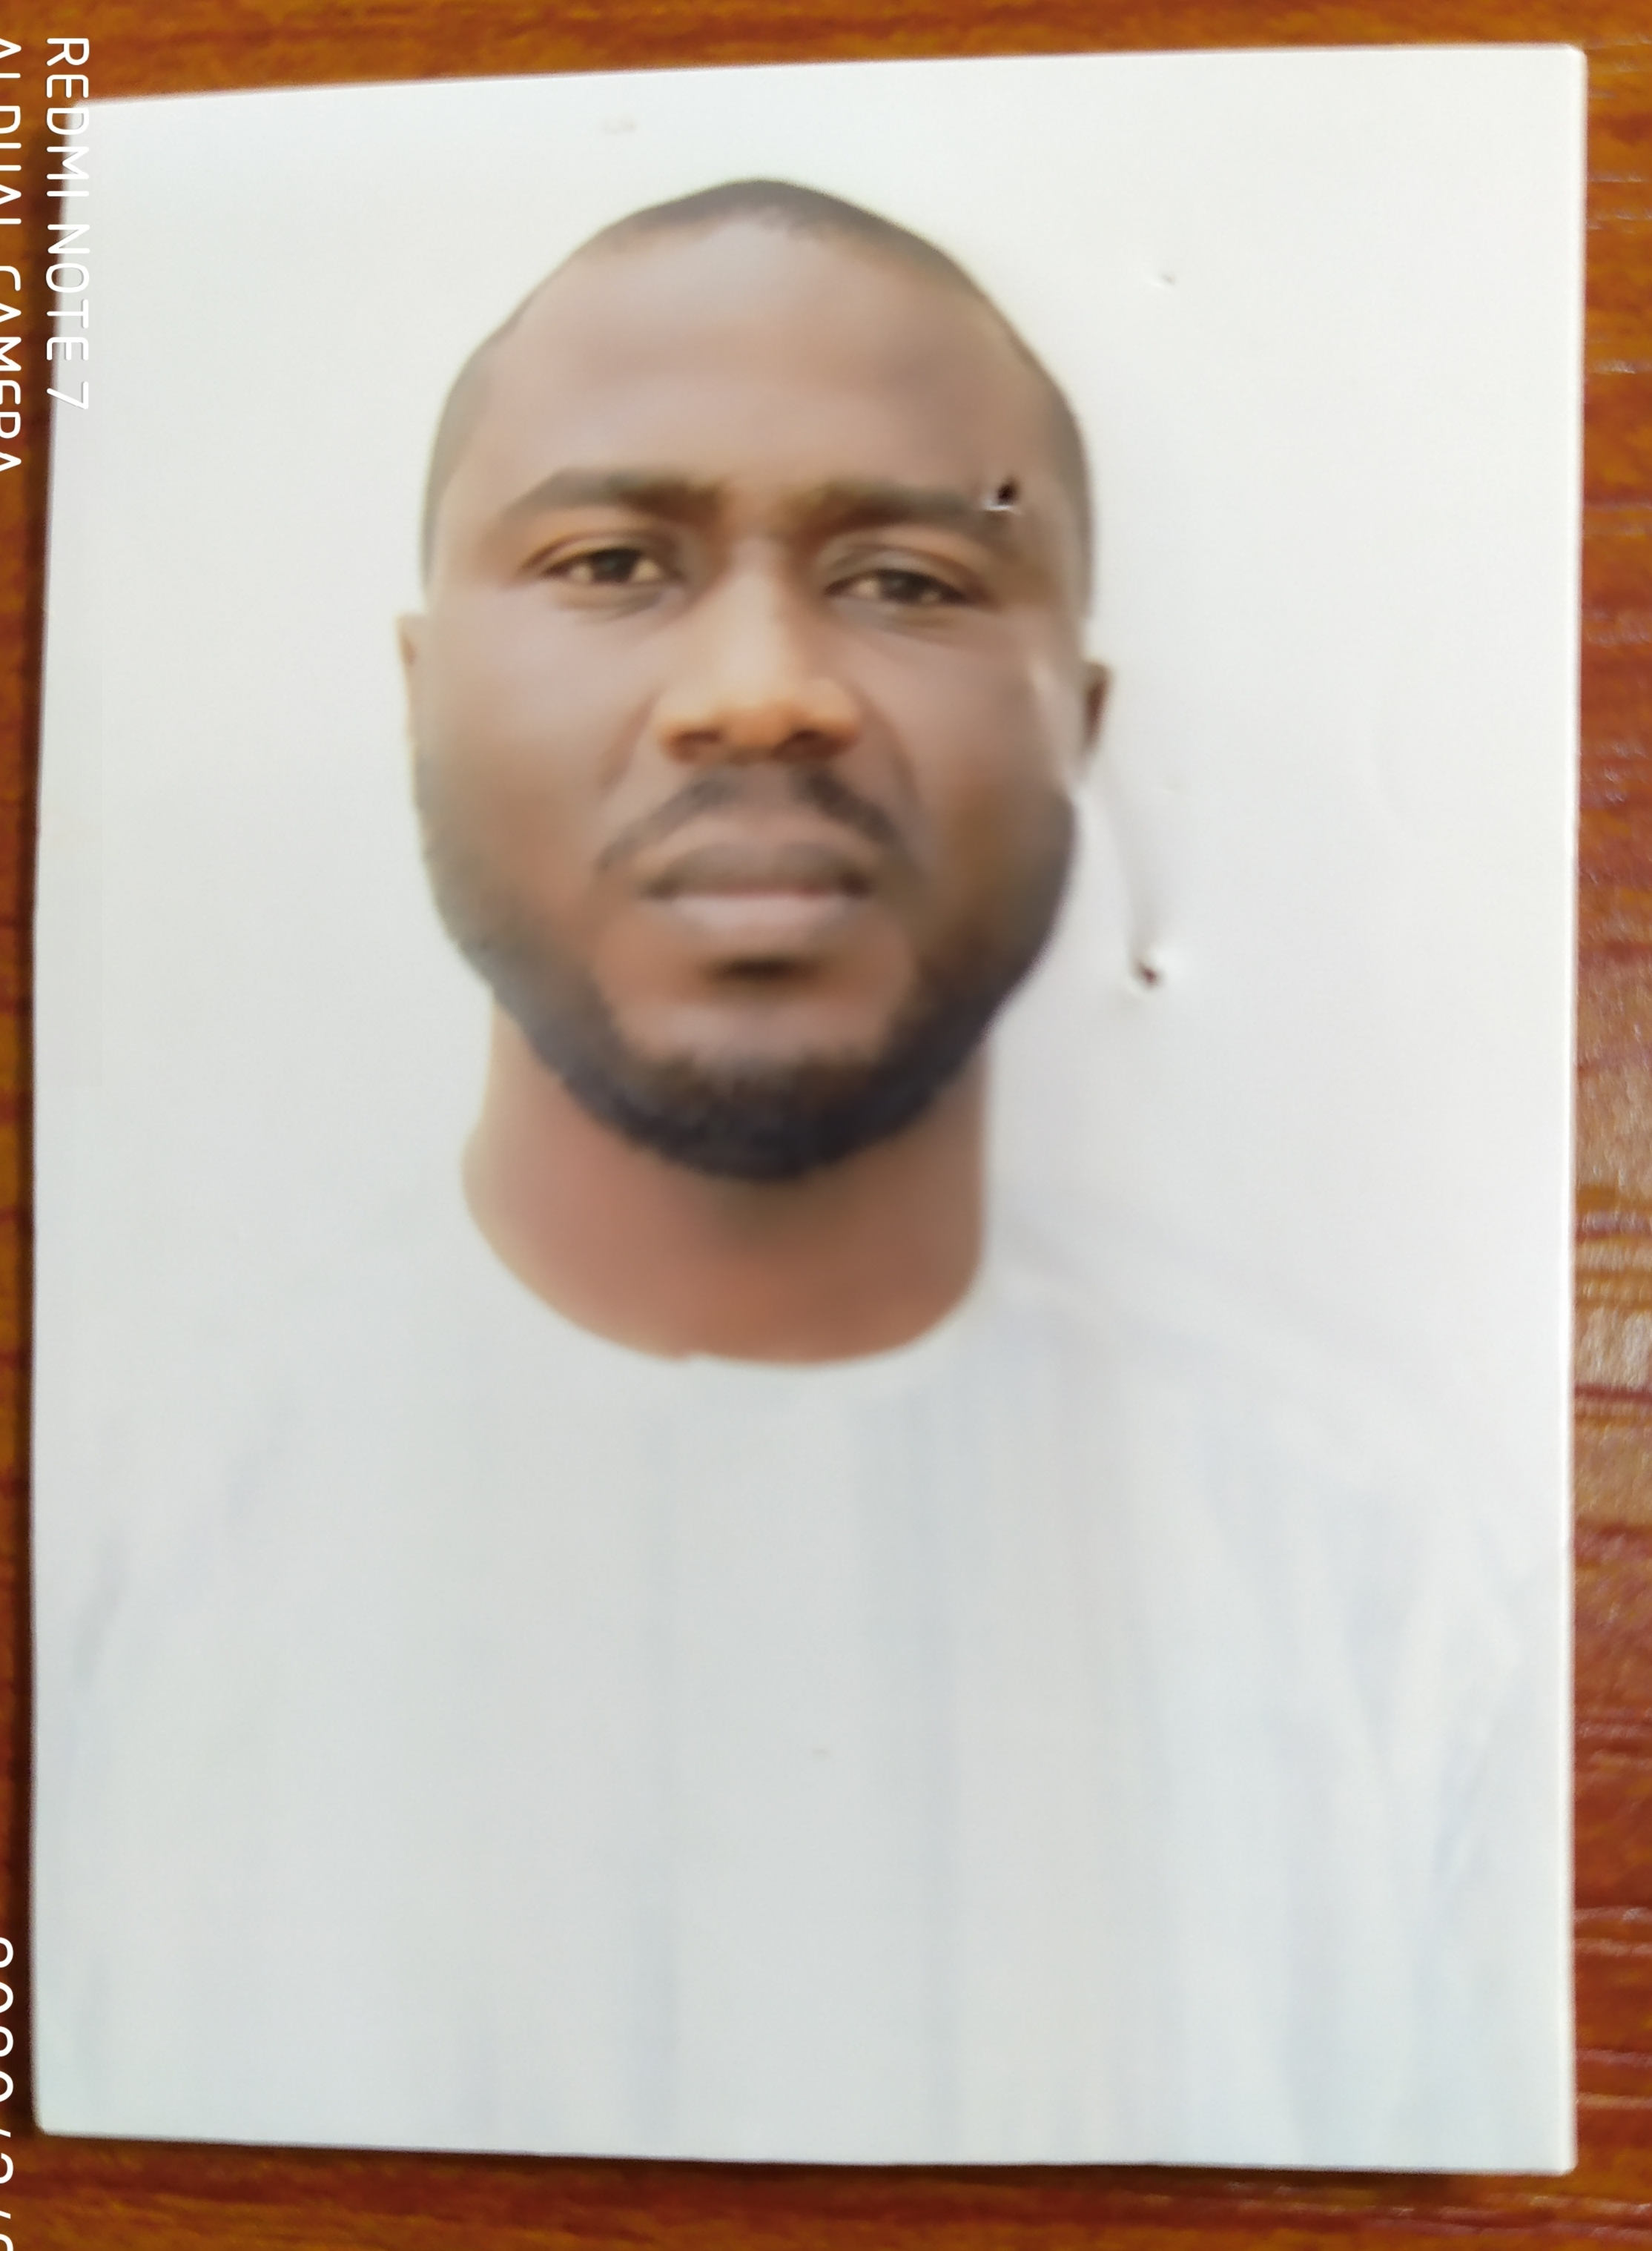 EFCC drags fake Atiku's aide to court over N100m campaign fraud